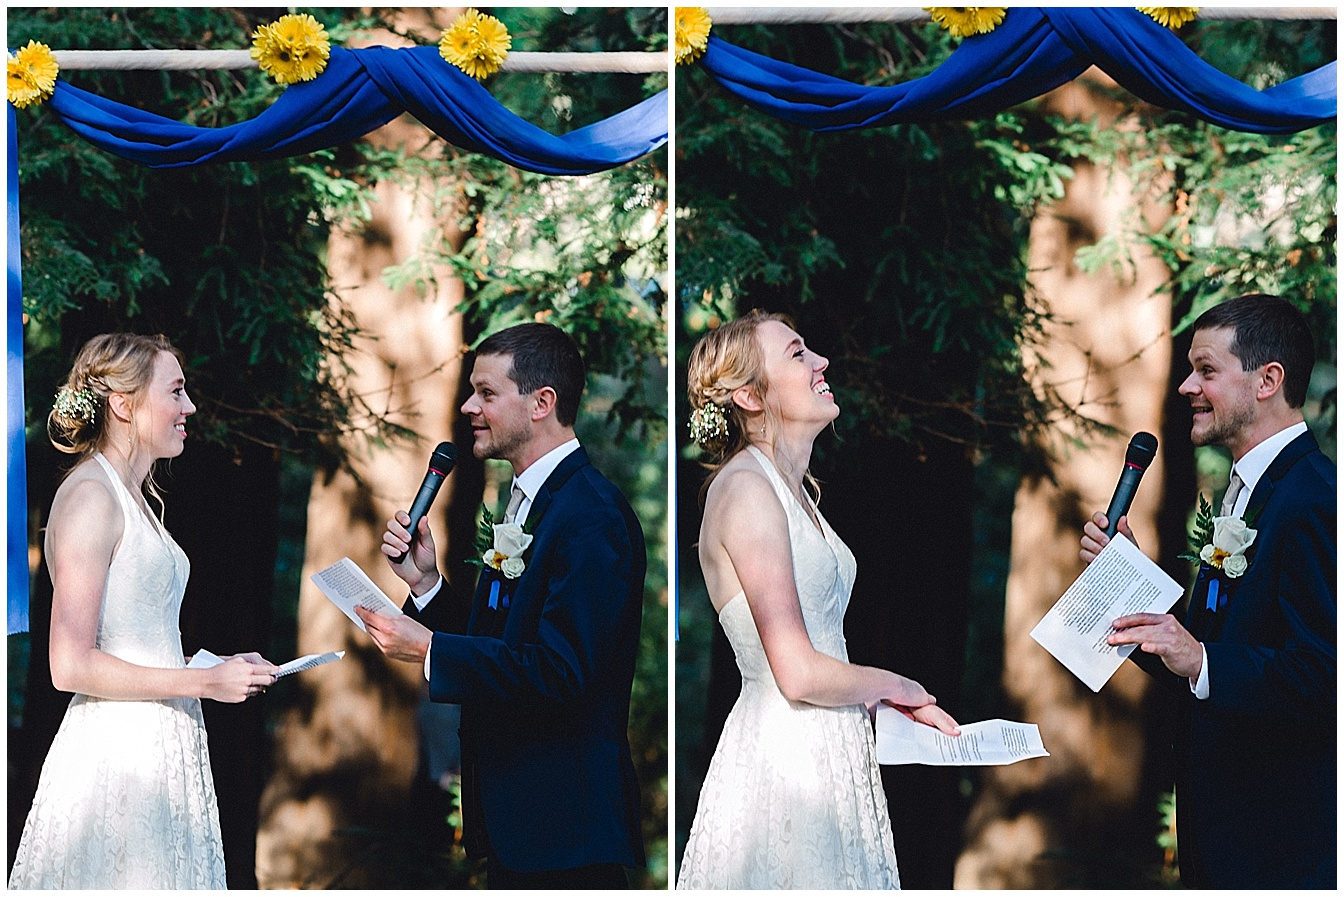 mauiweddingphotographer-mauidestinationwedding_0048.jpg